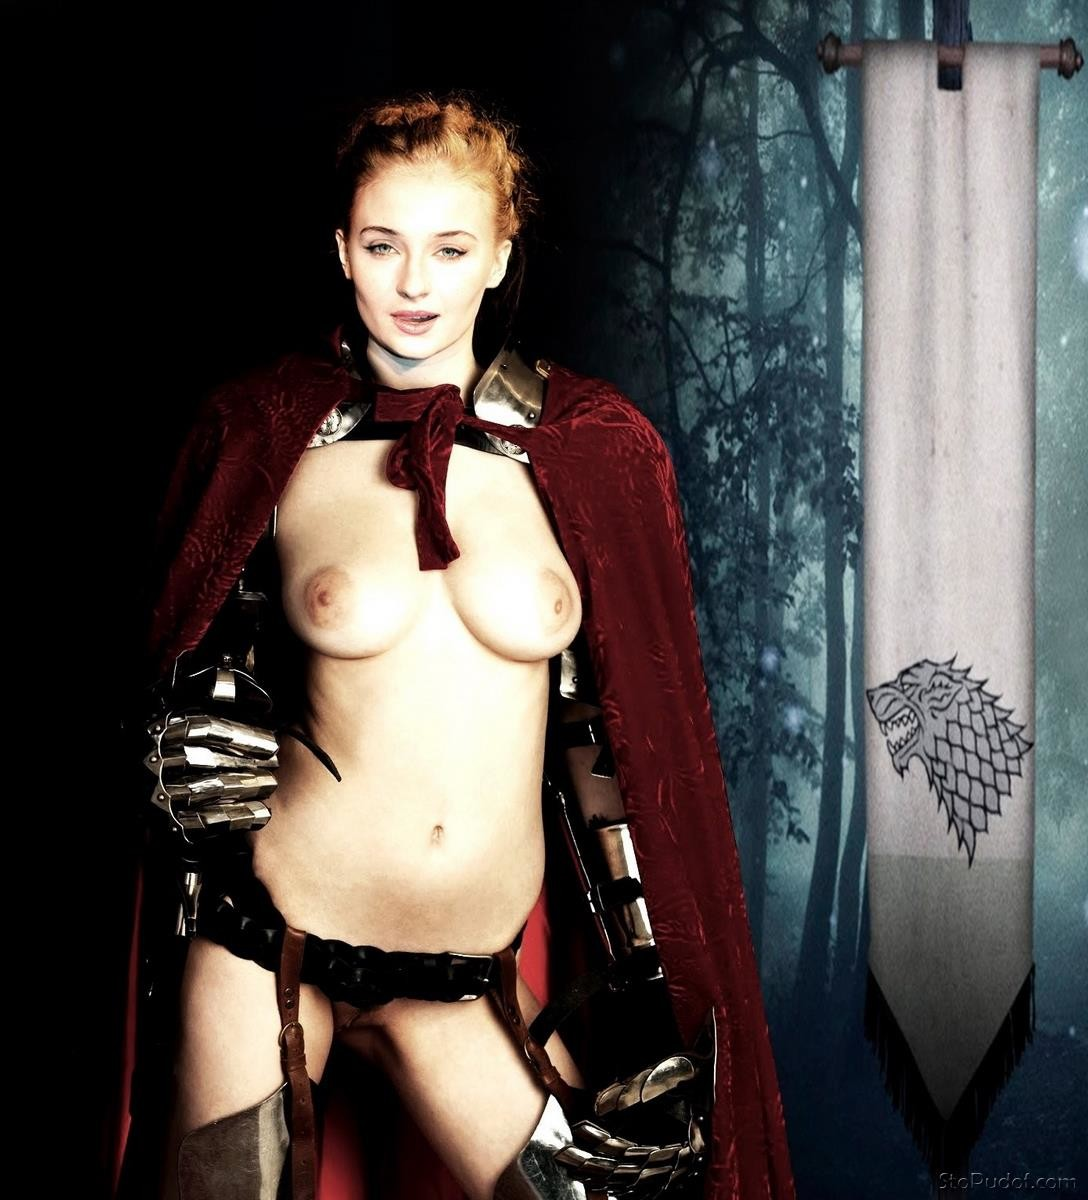 Sophie Turner nude body paint - UkPhotoSafari